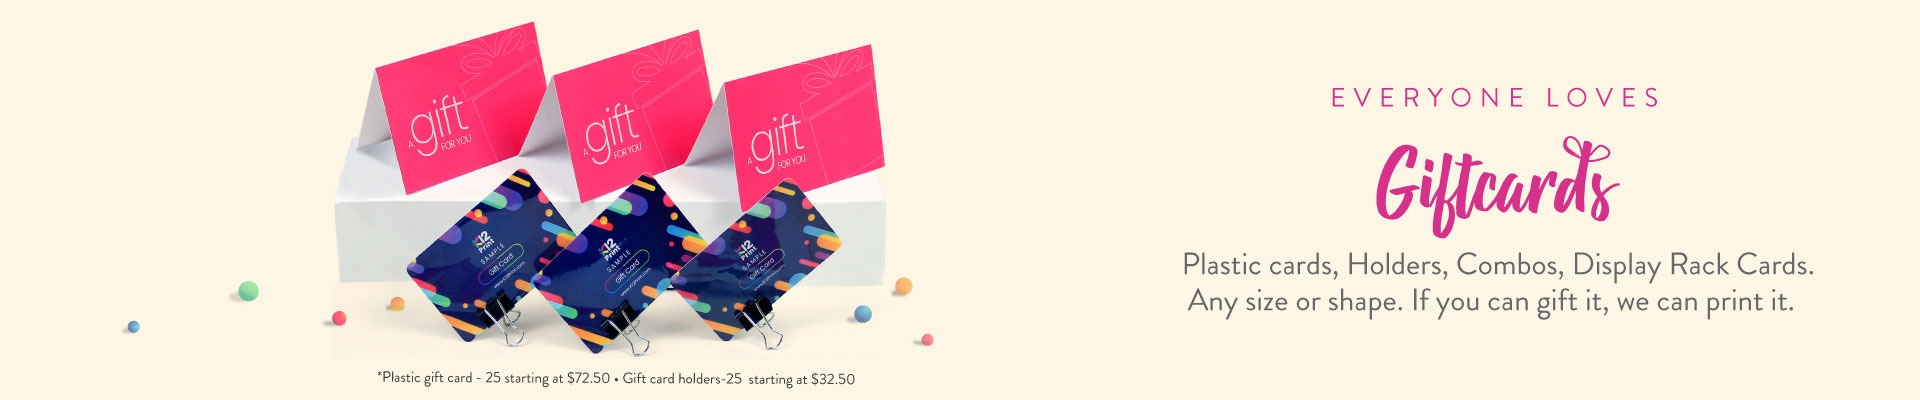 Gift Cards Banner